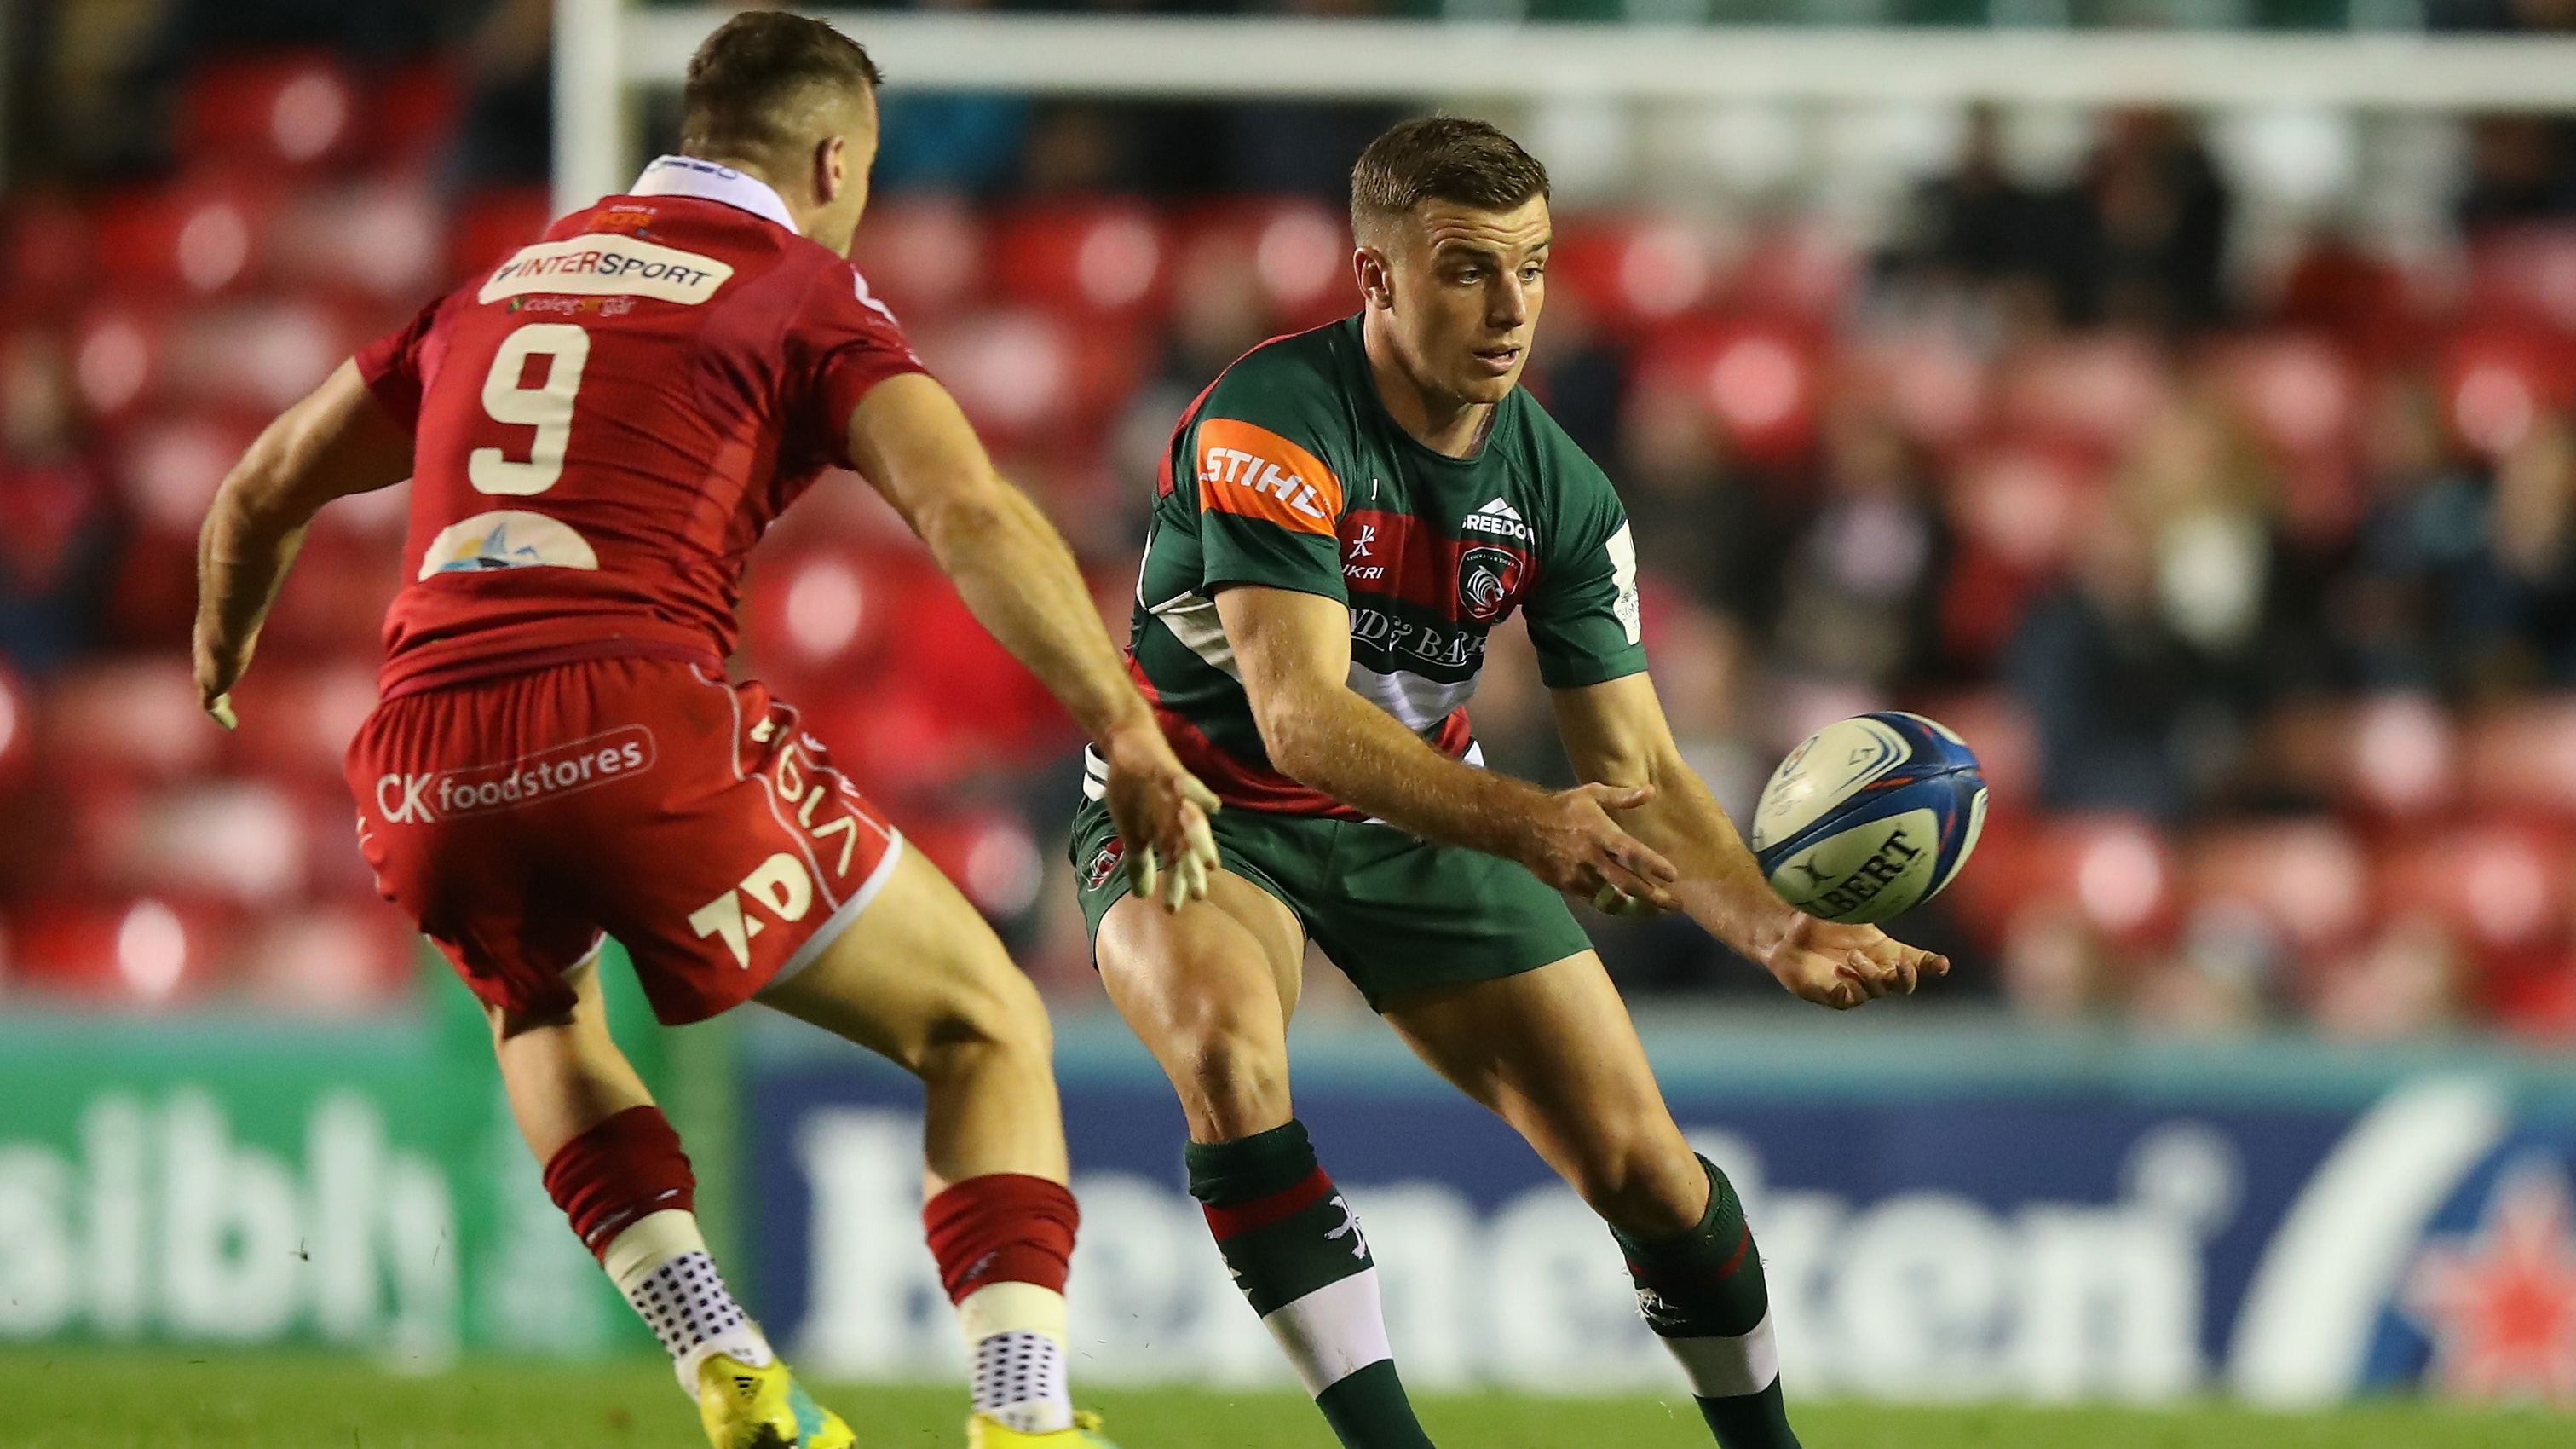 Highlights: Leicester Tigers 45, Scarlets 27